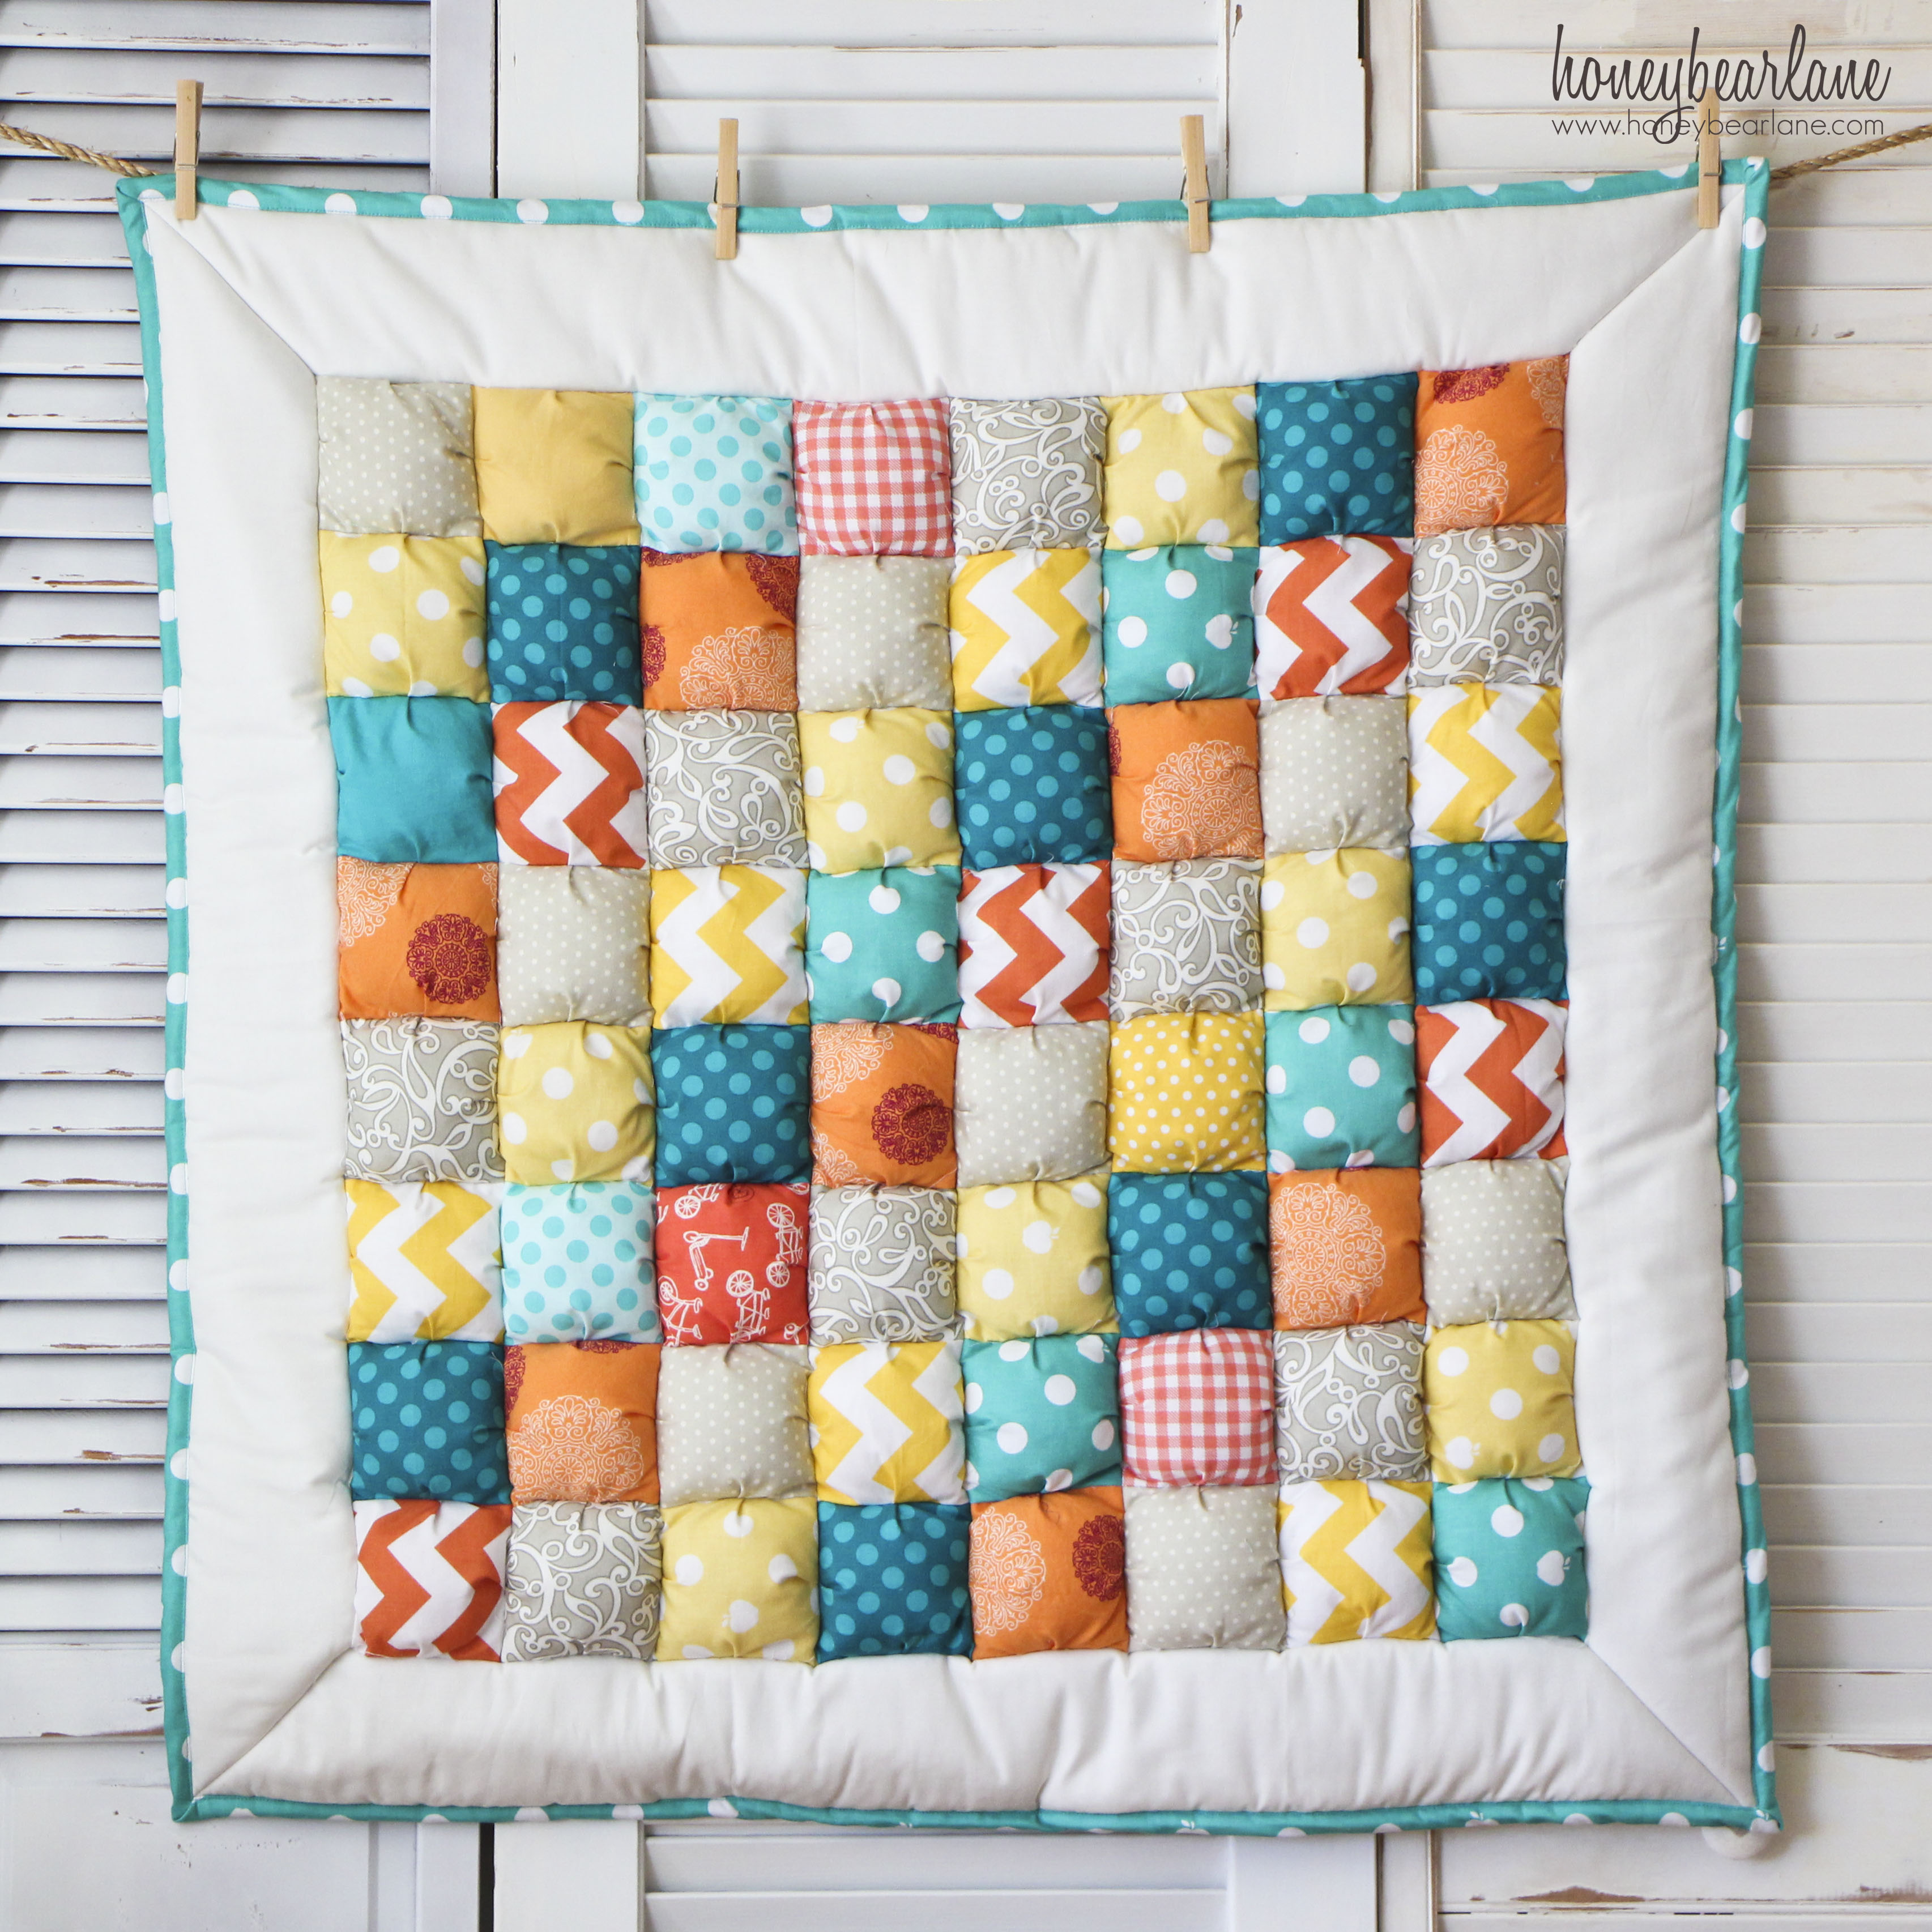 Free Pattern For Baby Puff Quilt : New Puff Quilts and An Announcement - HoneyBear Lane